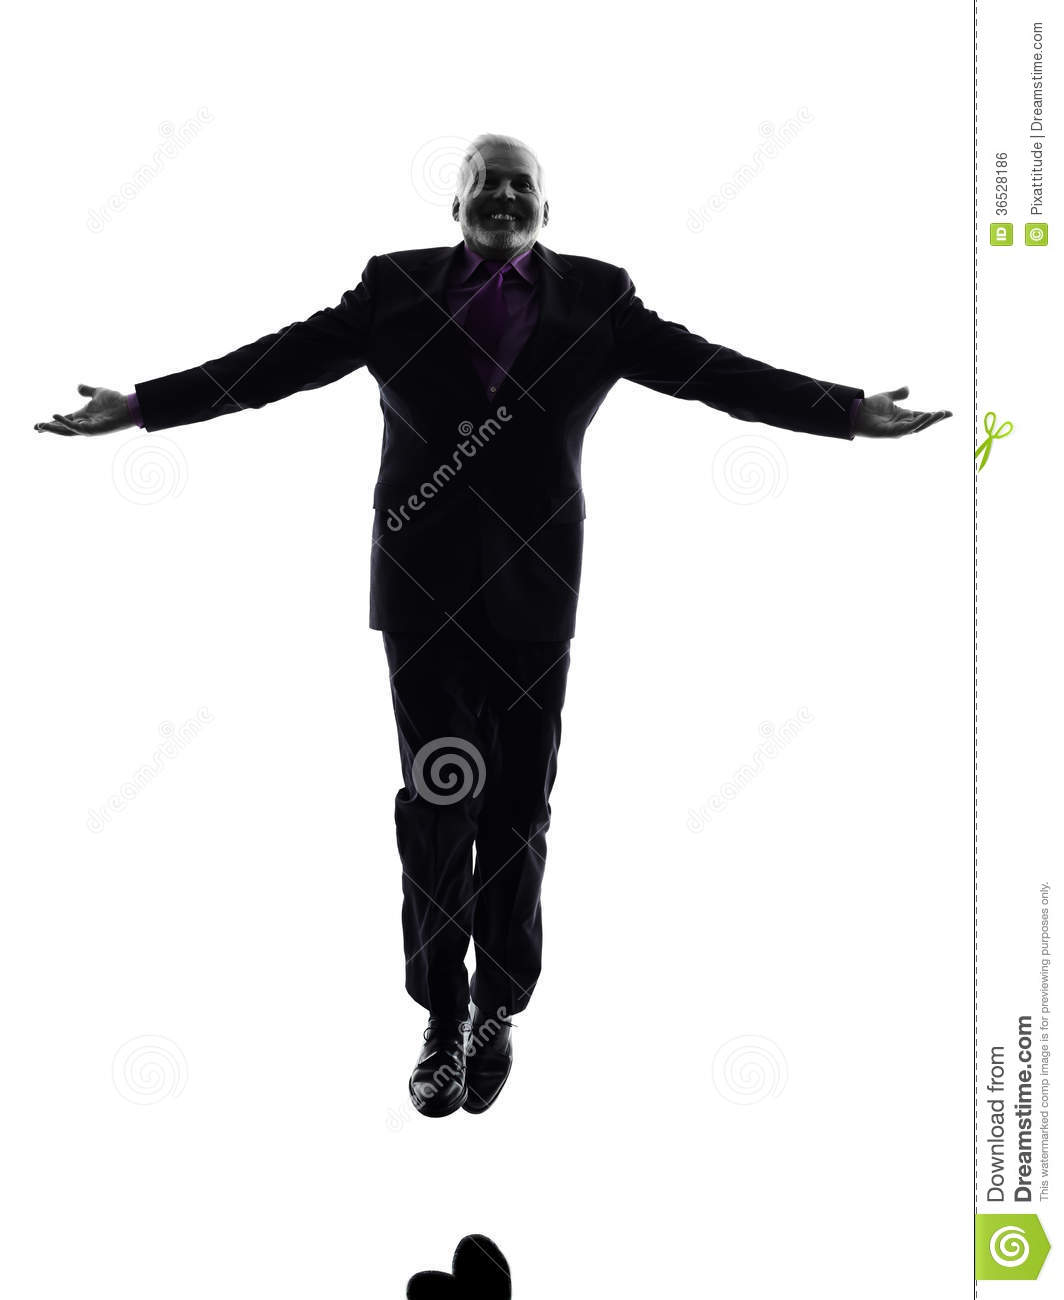 senior business man jumping arms outstretched silhouette stock photo